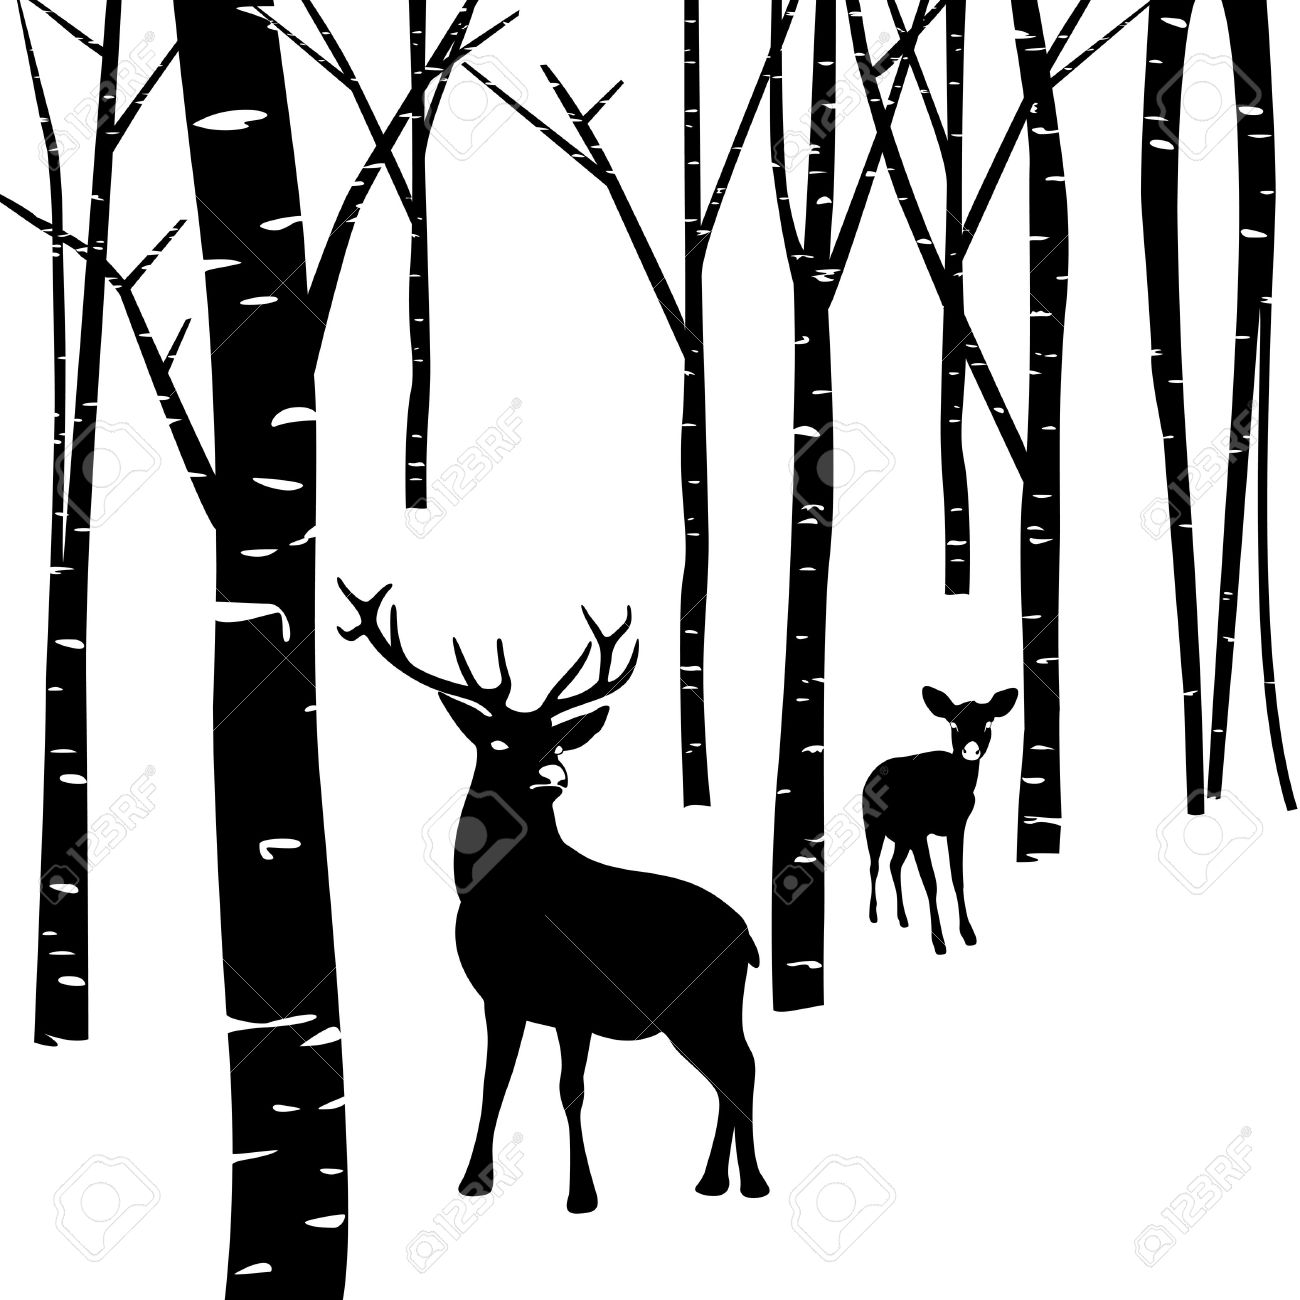 Forest Silhouette Clip Art At Getdrawings